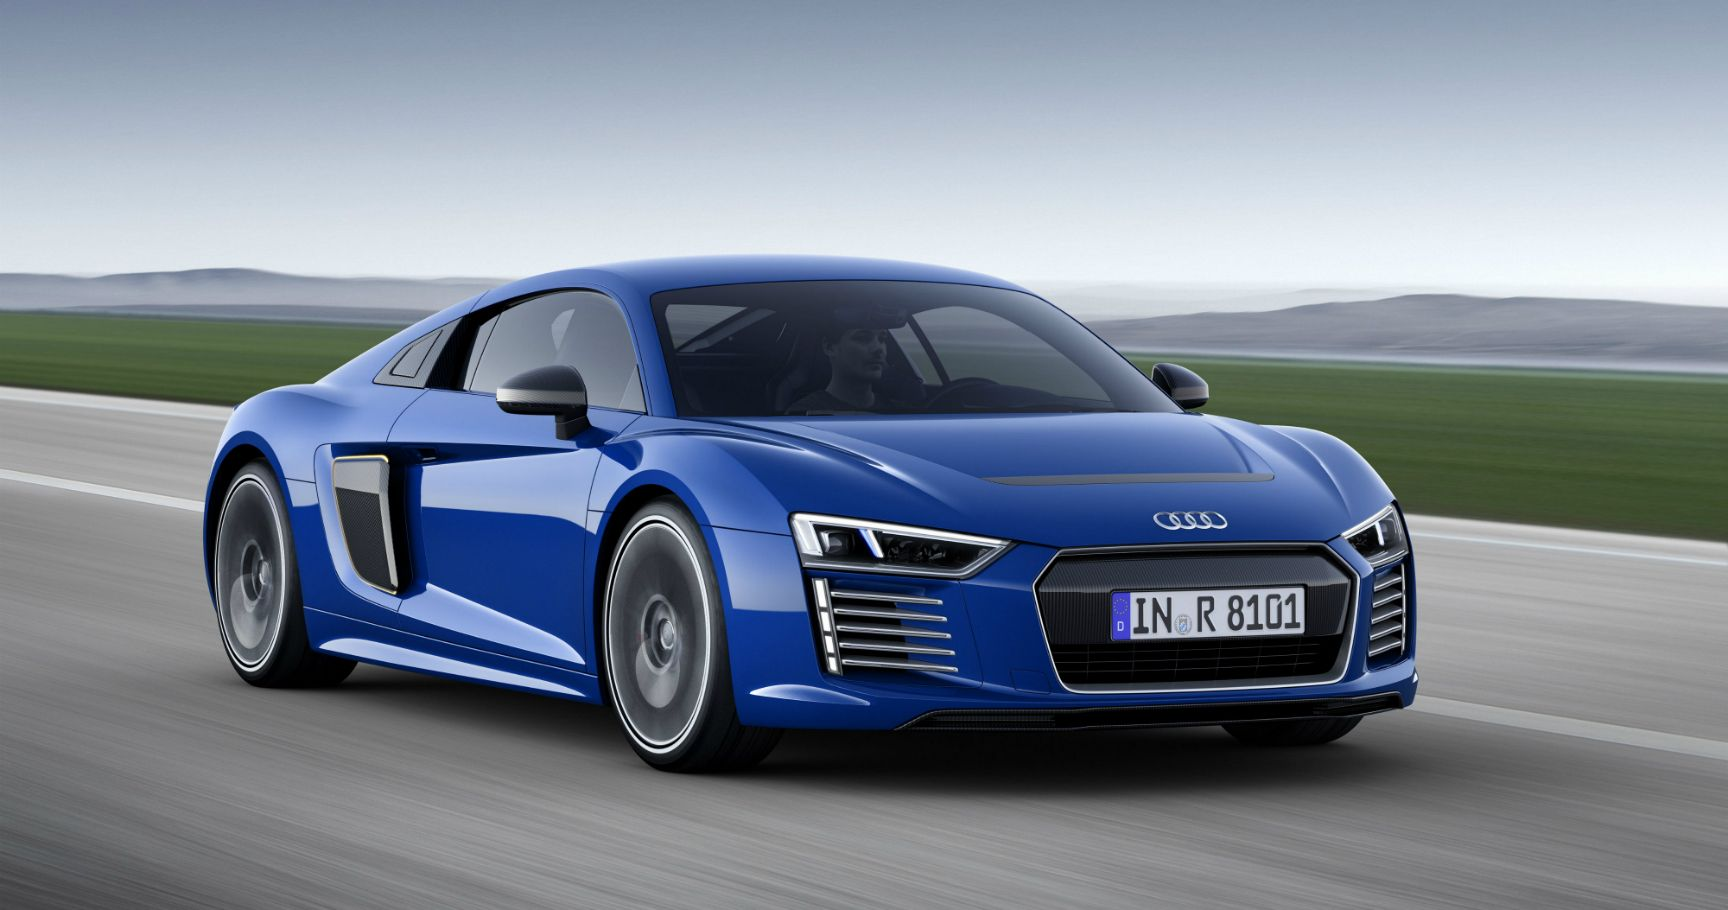 Top 10 All-Time Fastest Audis From 0-60 MPH